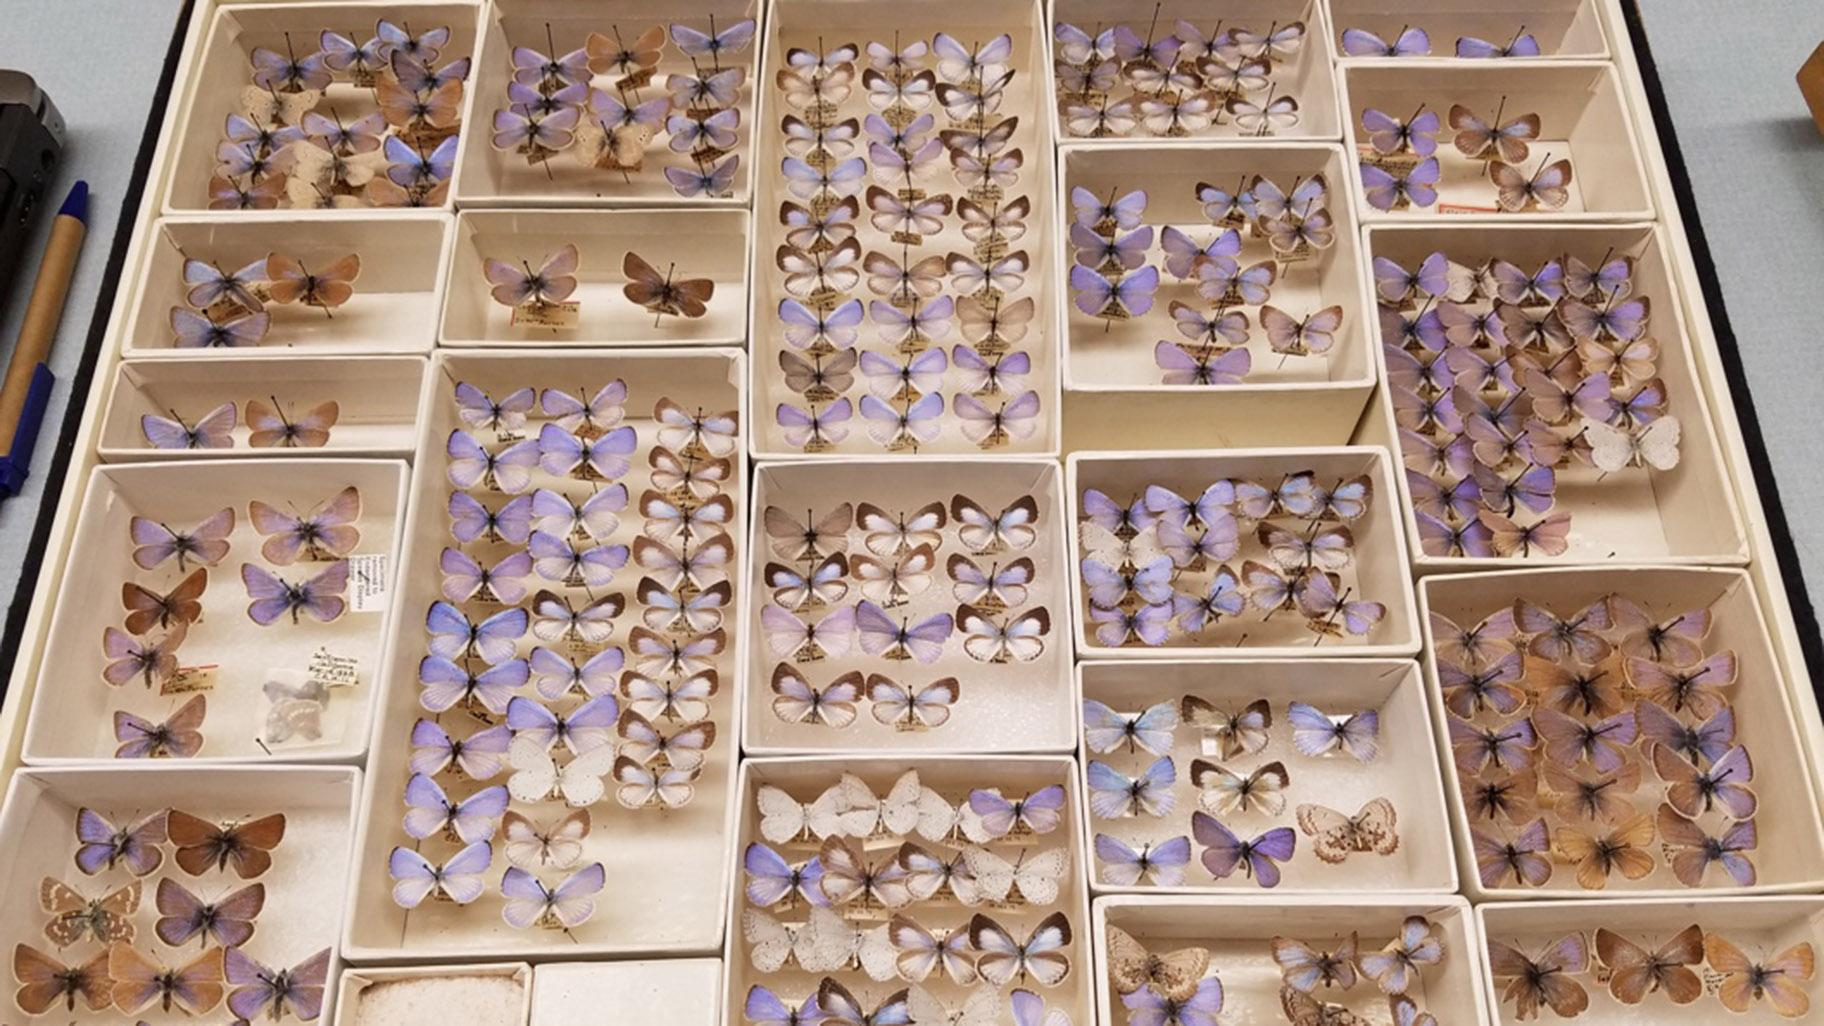 Specimens of the extinct Xerces blue butterfly, in the Field Museum's collection. (Courtesy of Field Museum)